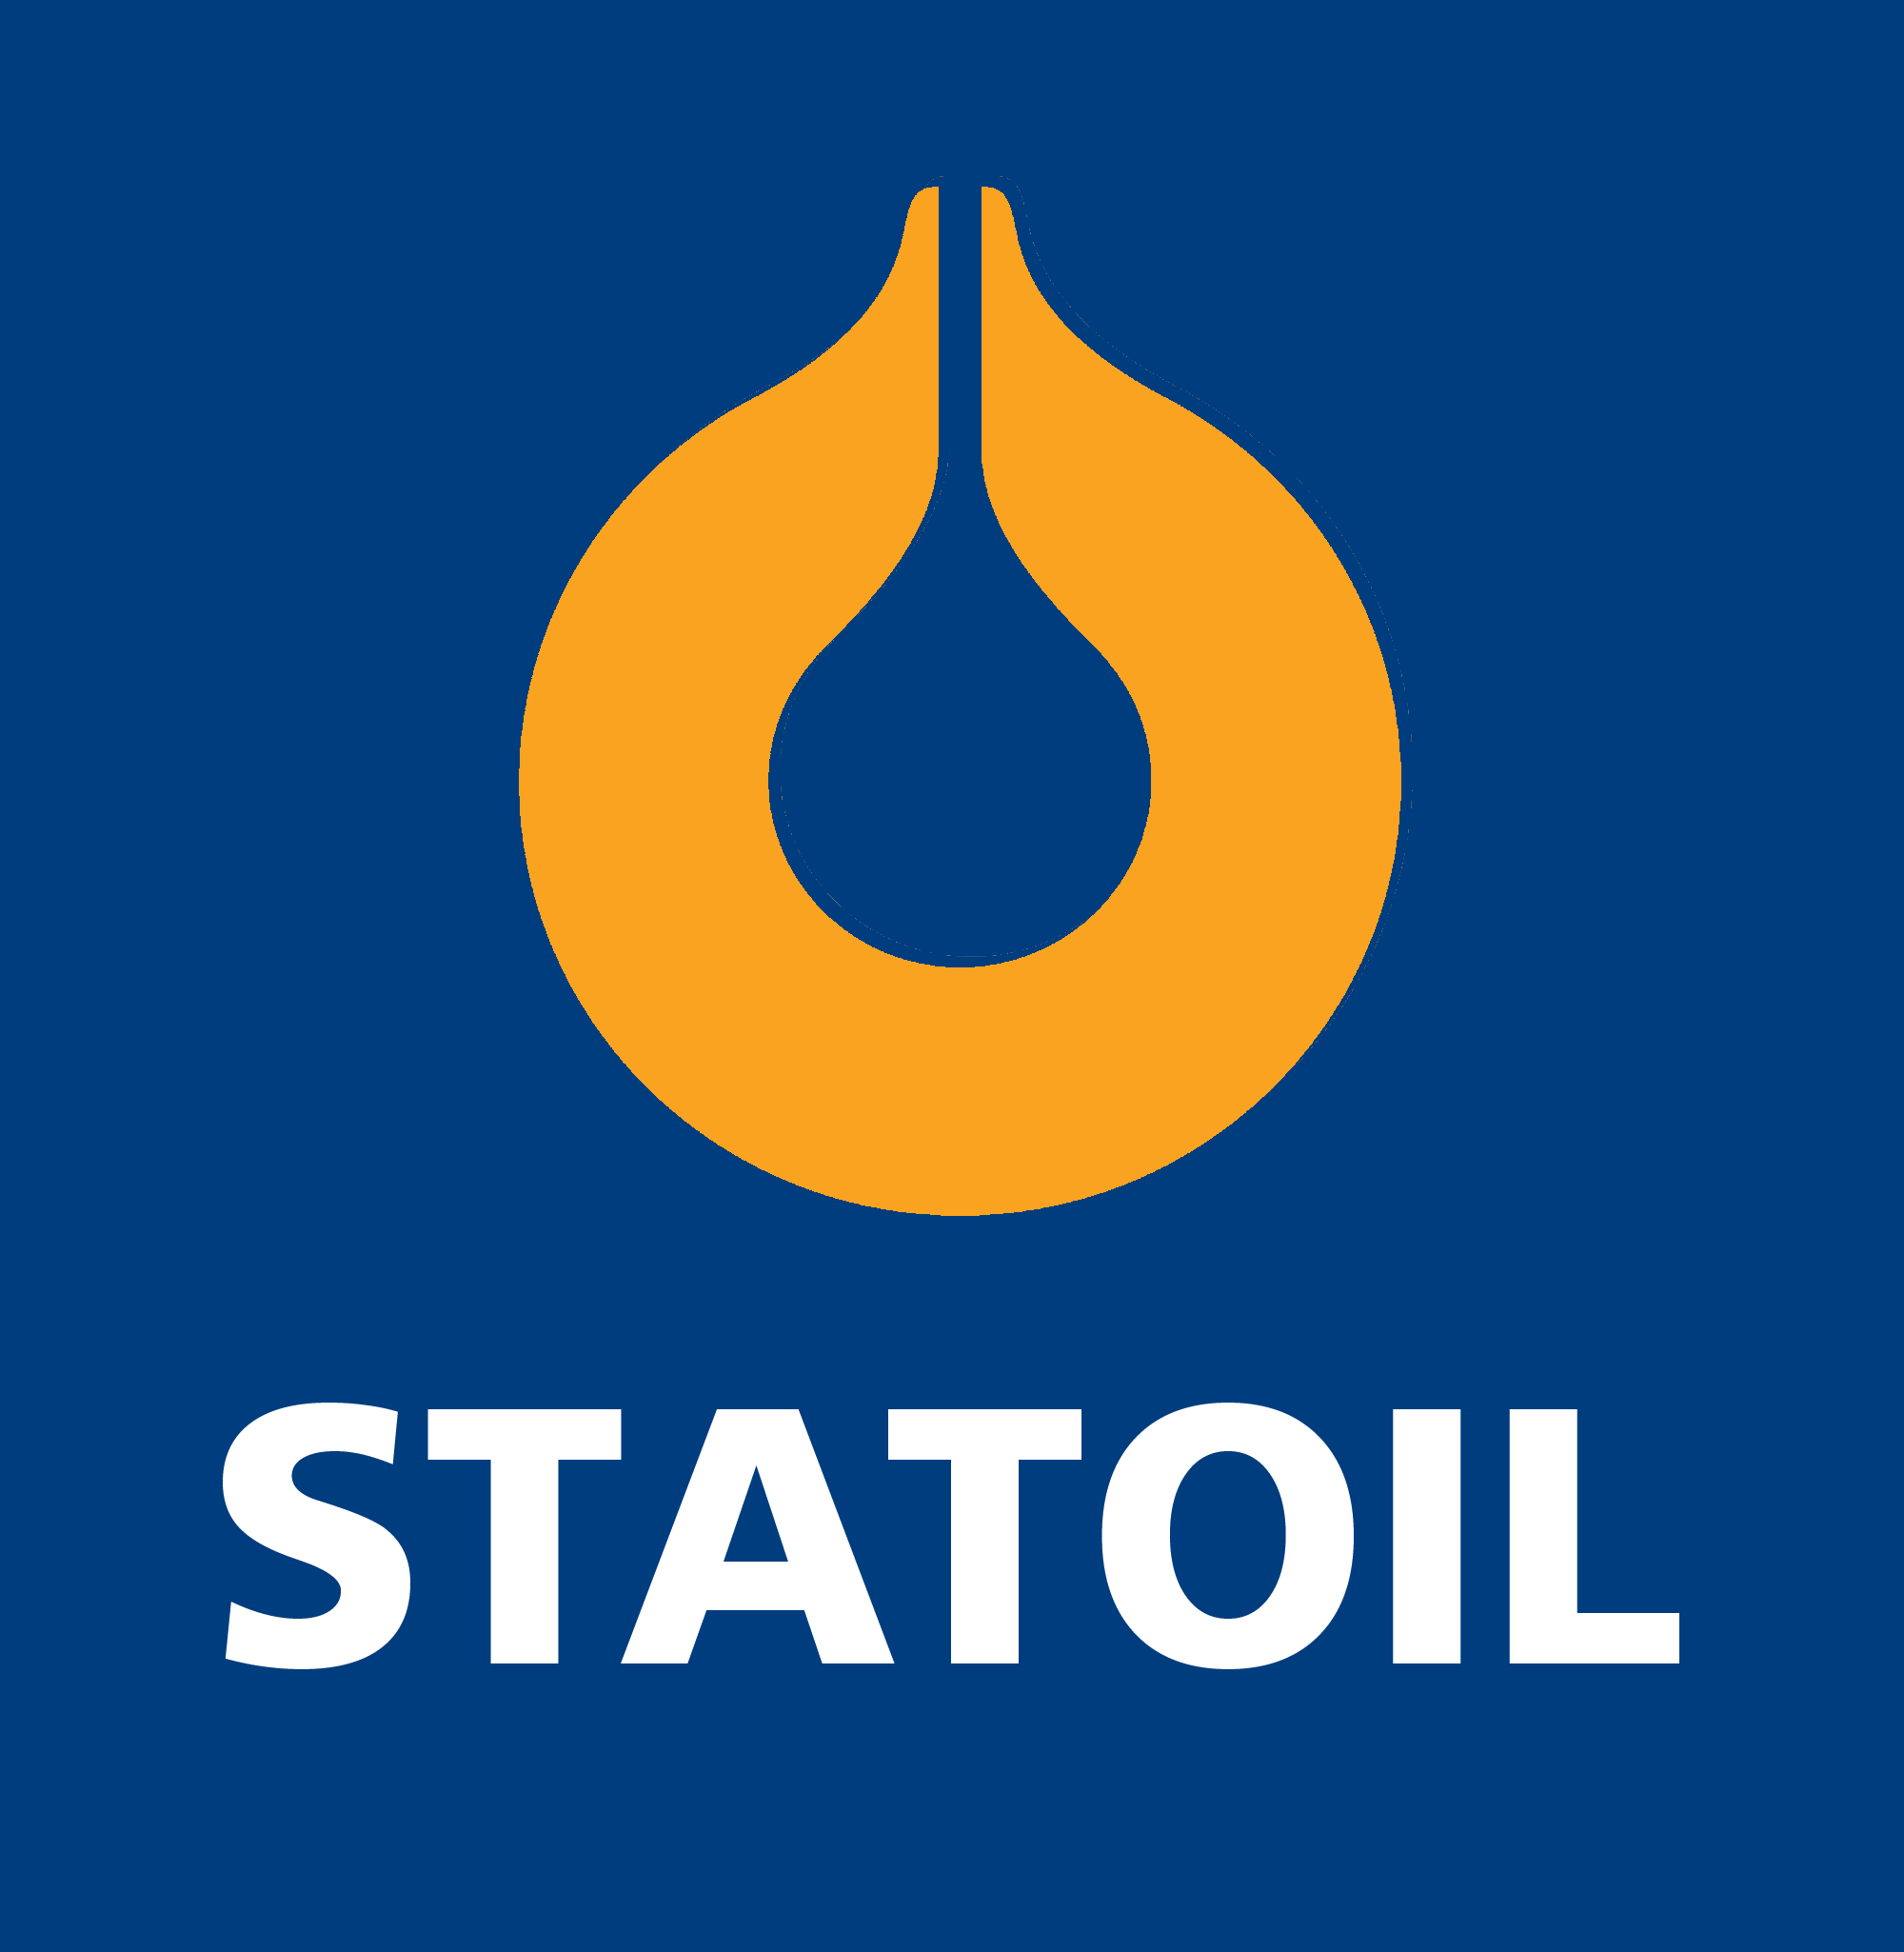 Statoil – Logos Download